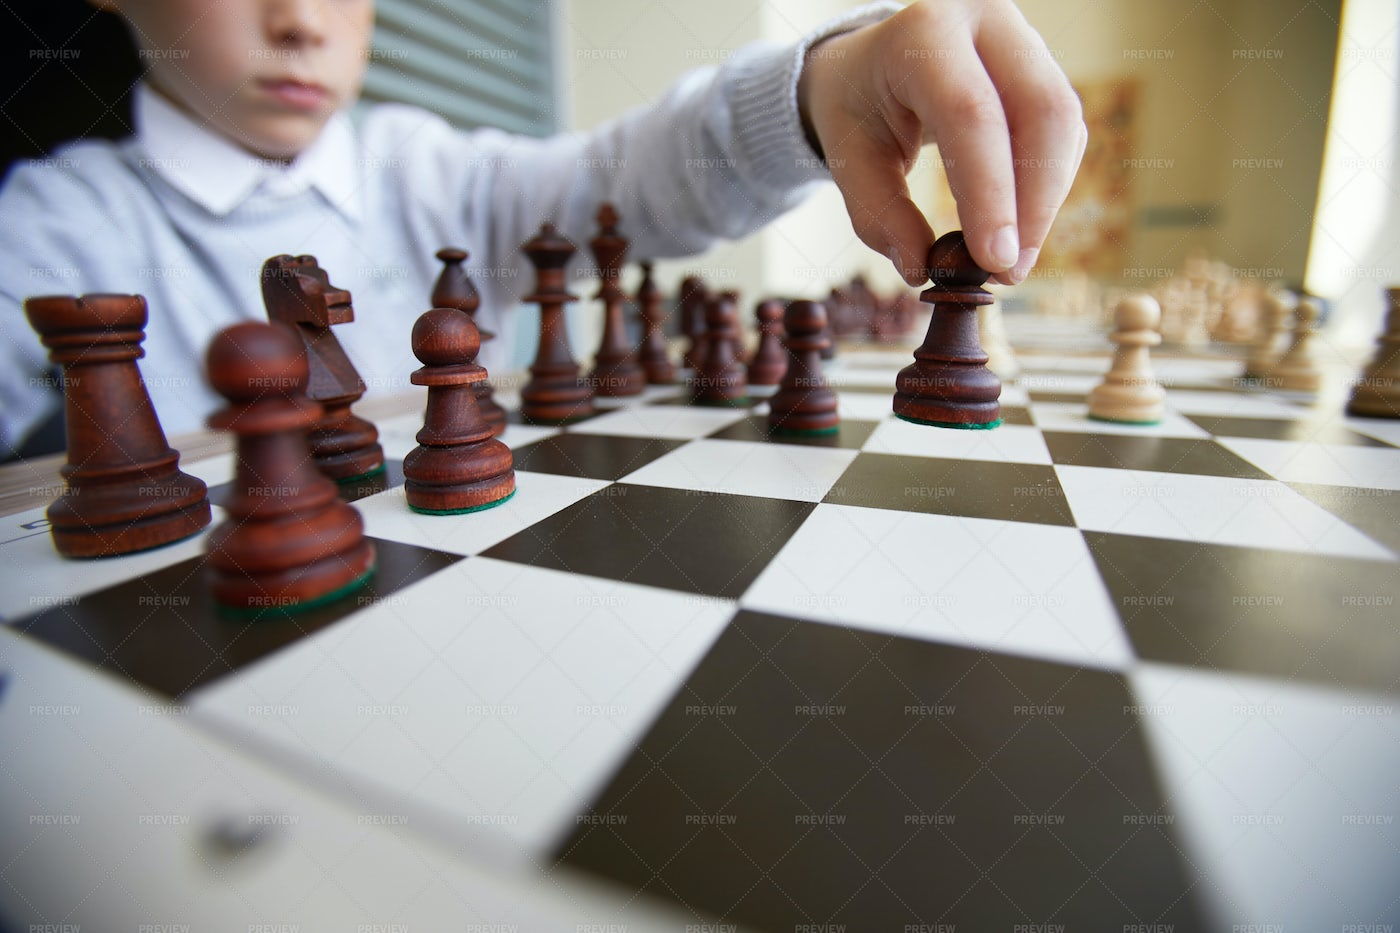 Boy Making Chess Move: Stock Photos